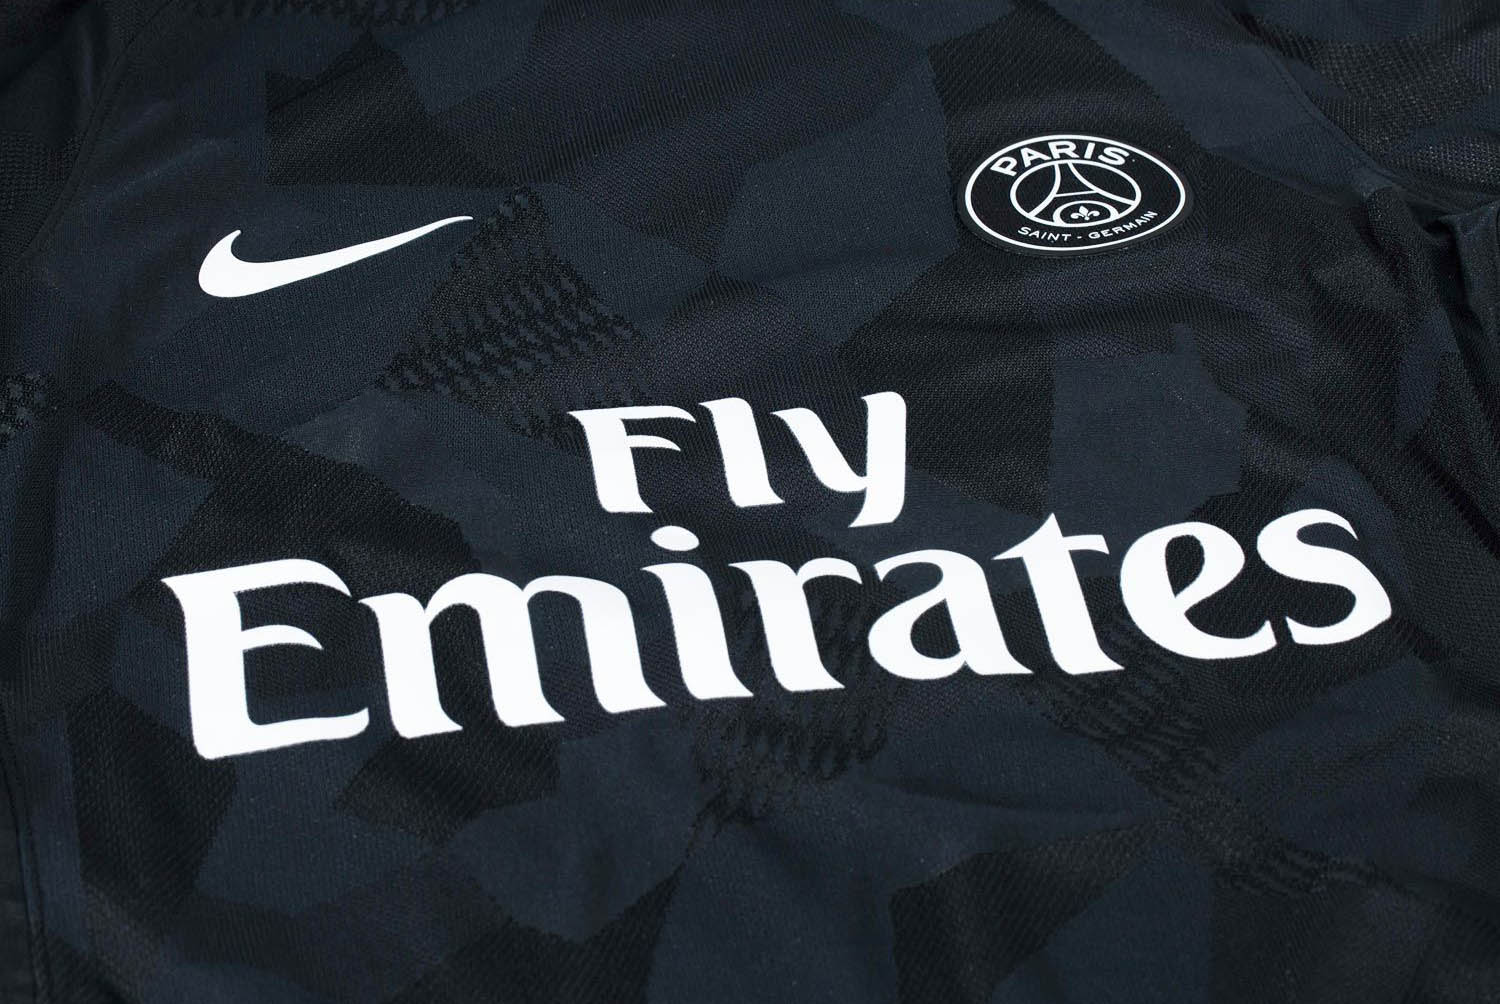 PSG: third shirt is almost entirely black features a type of camouflage print inspired by Paris architectural icons all over the shirt and shorts. MIB its coming.